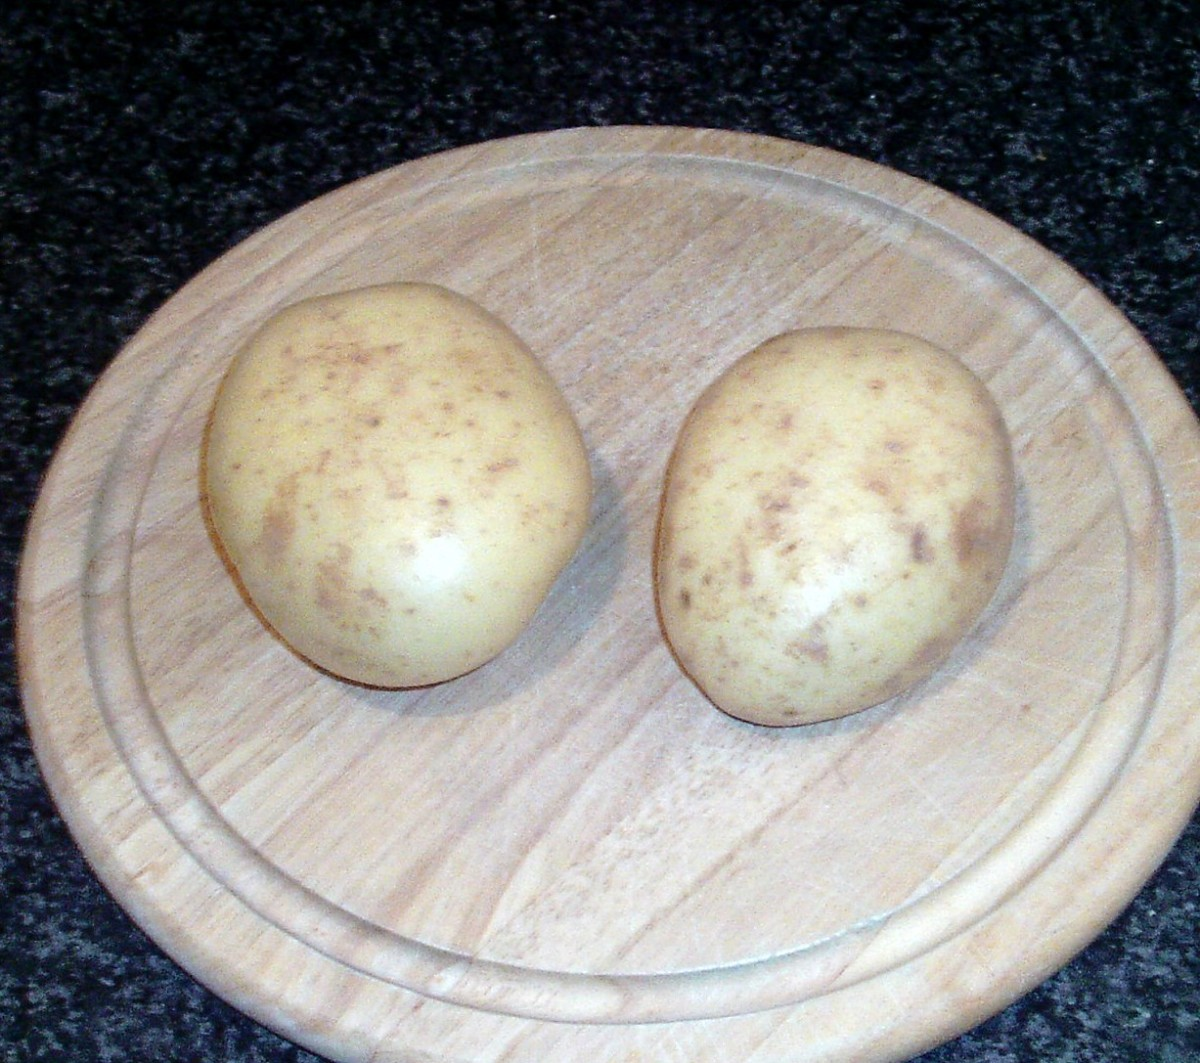 Medium sized baking potatoes for making chips